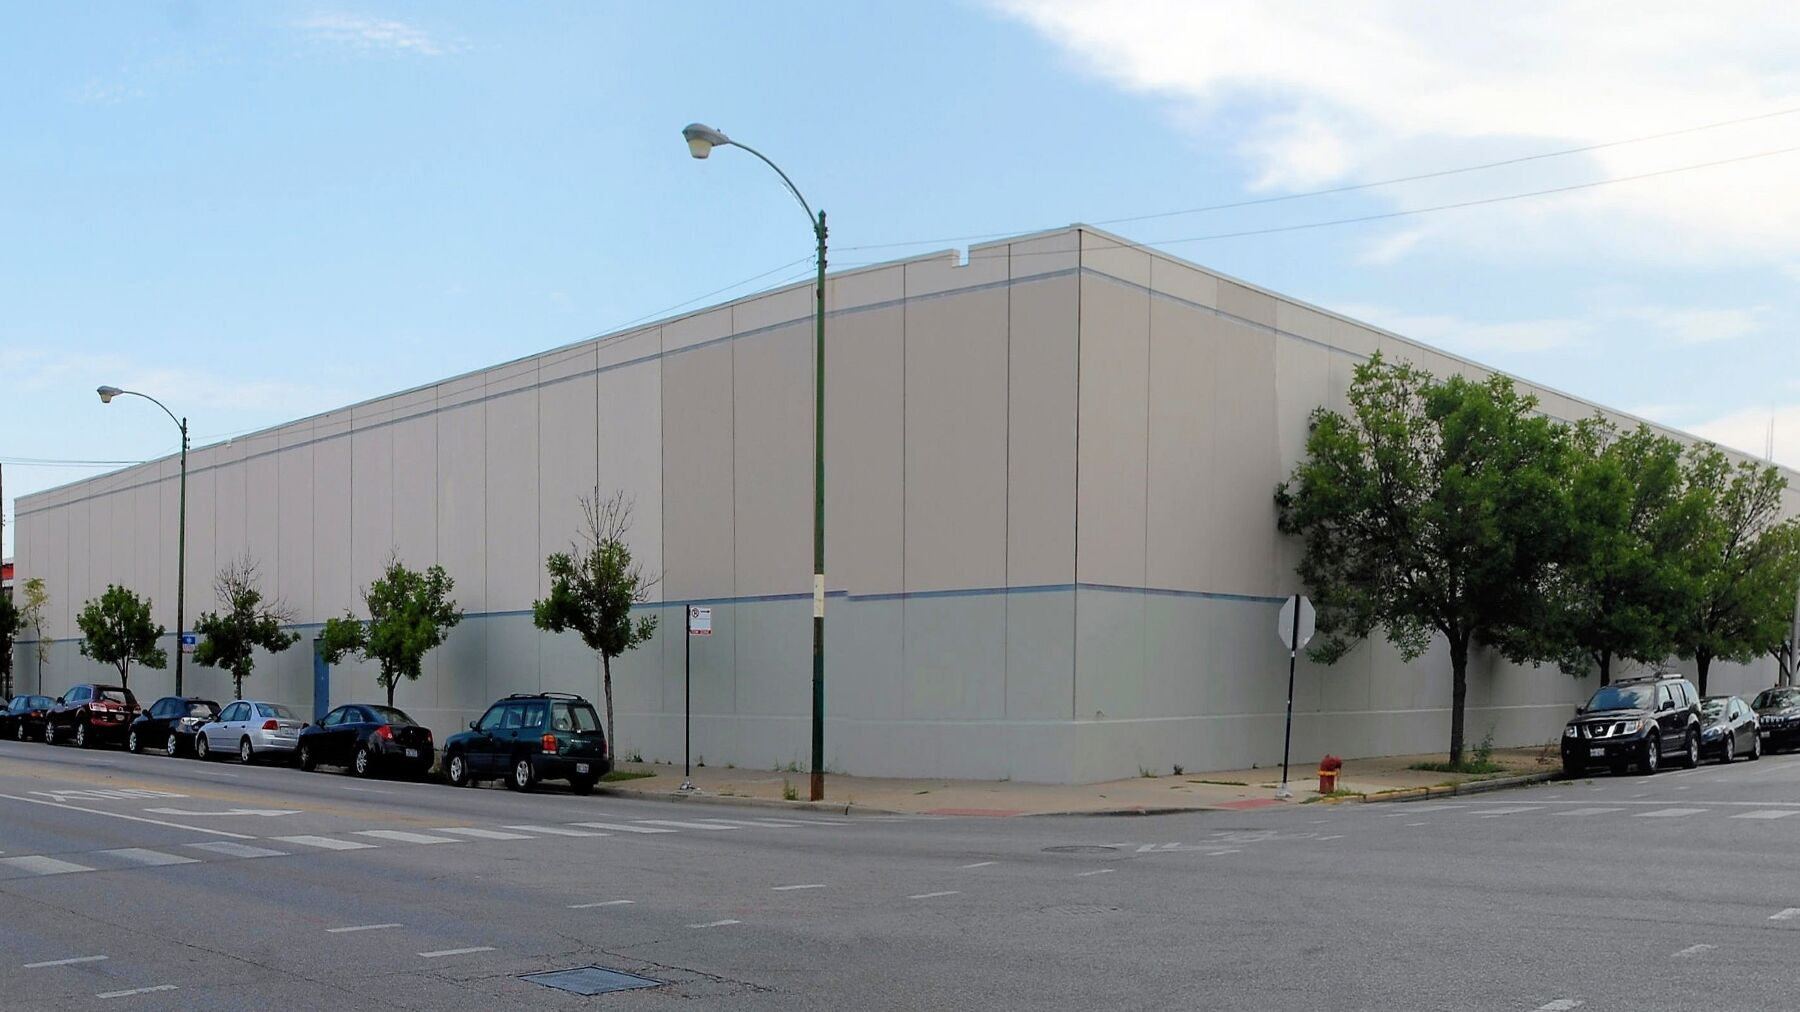 DPM-Prologis-Chicago-455-Ashland-Ave_Bldg-Image.jpg